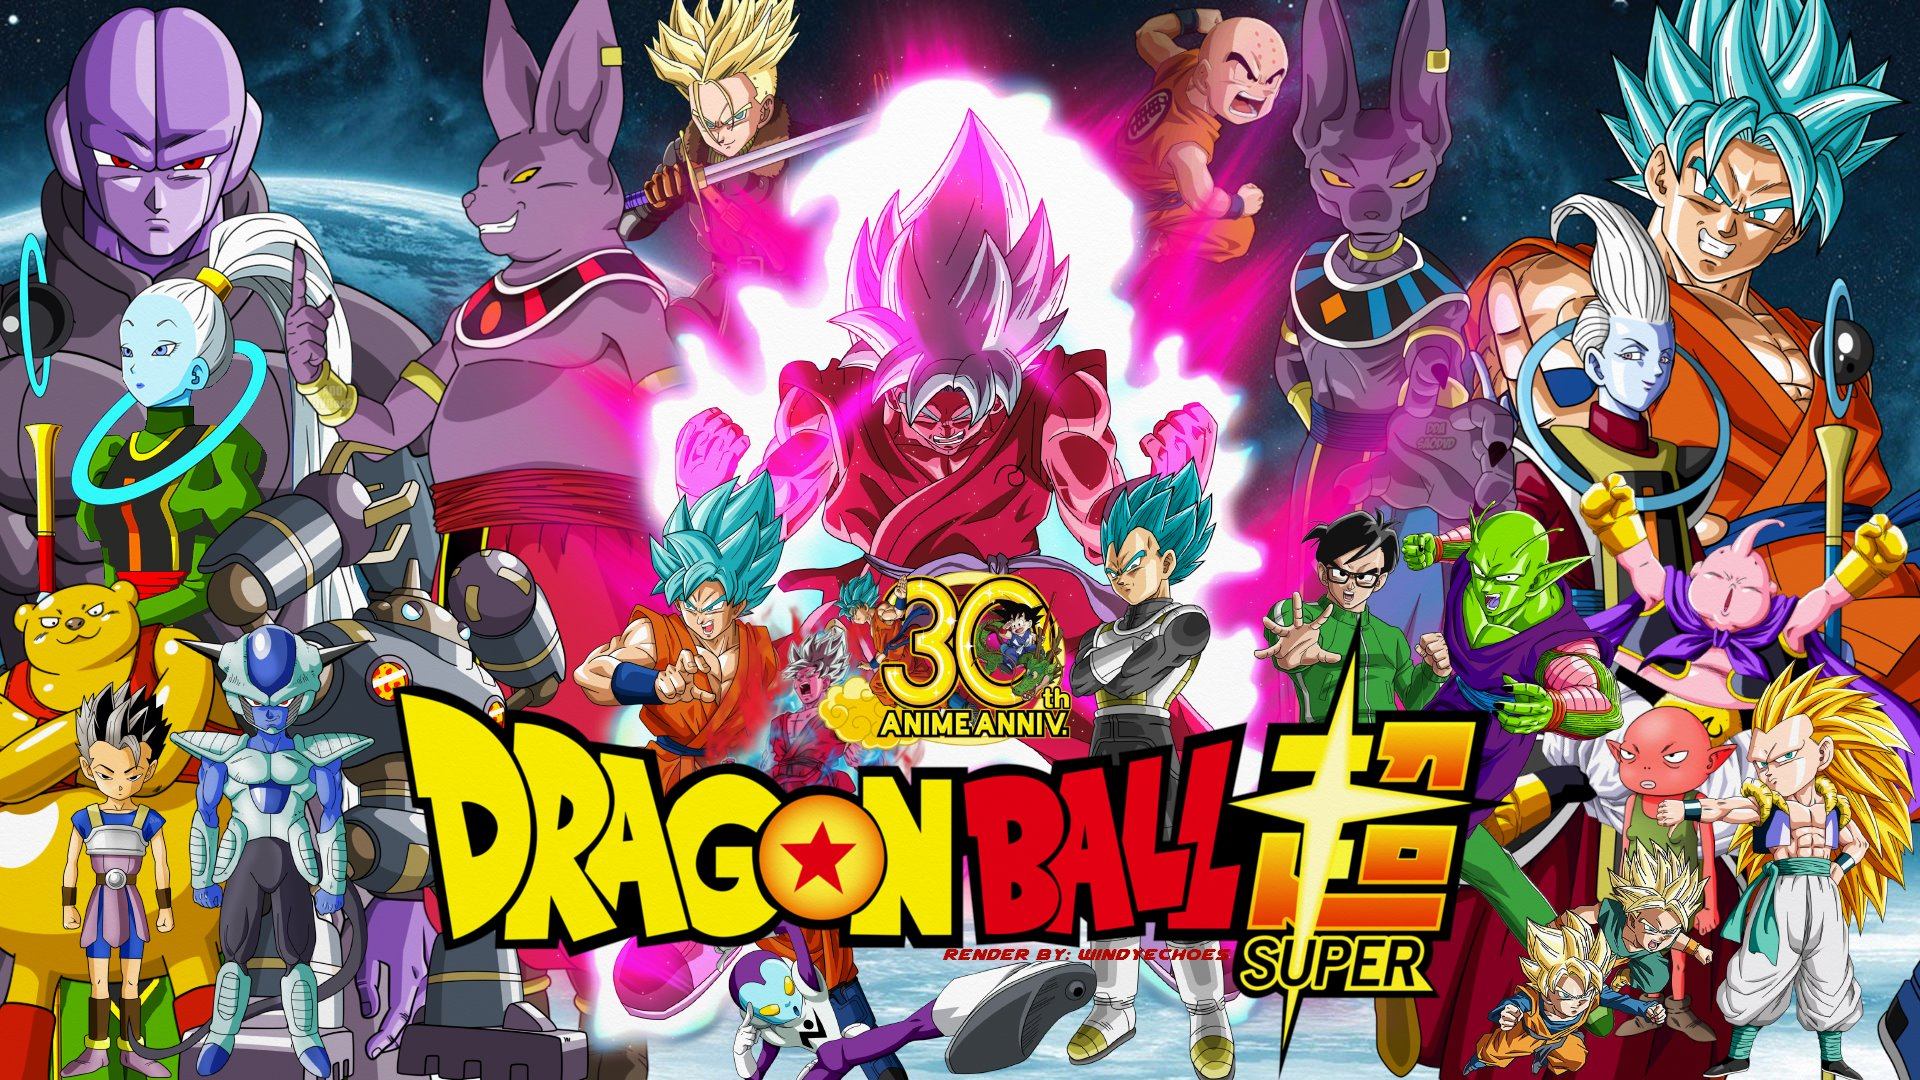 Dragon Ball Super Hd Wallpaper Background Image 1920x1080 Id